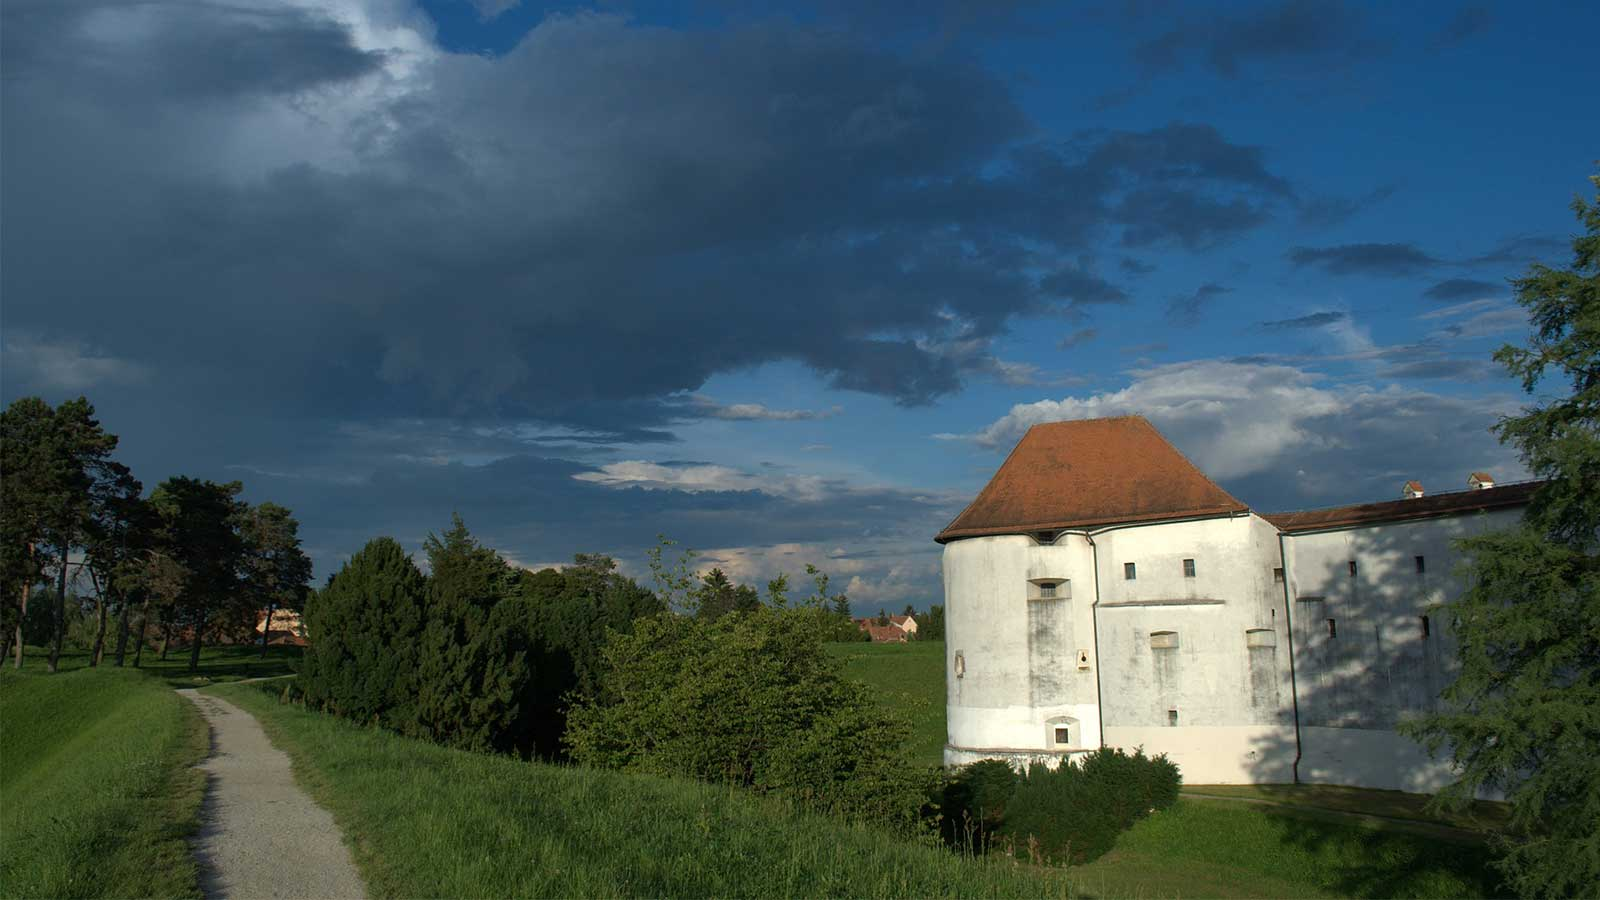 Castles from the Croatia Zagorje area